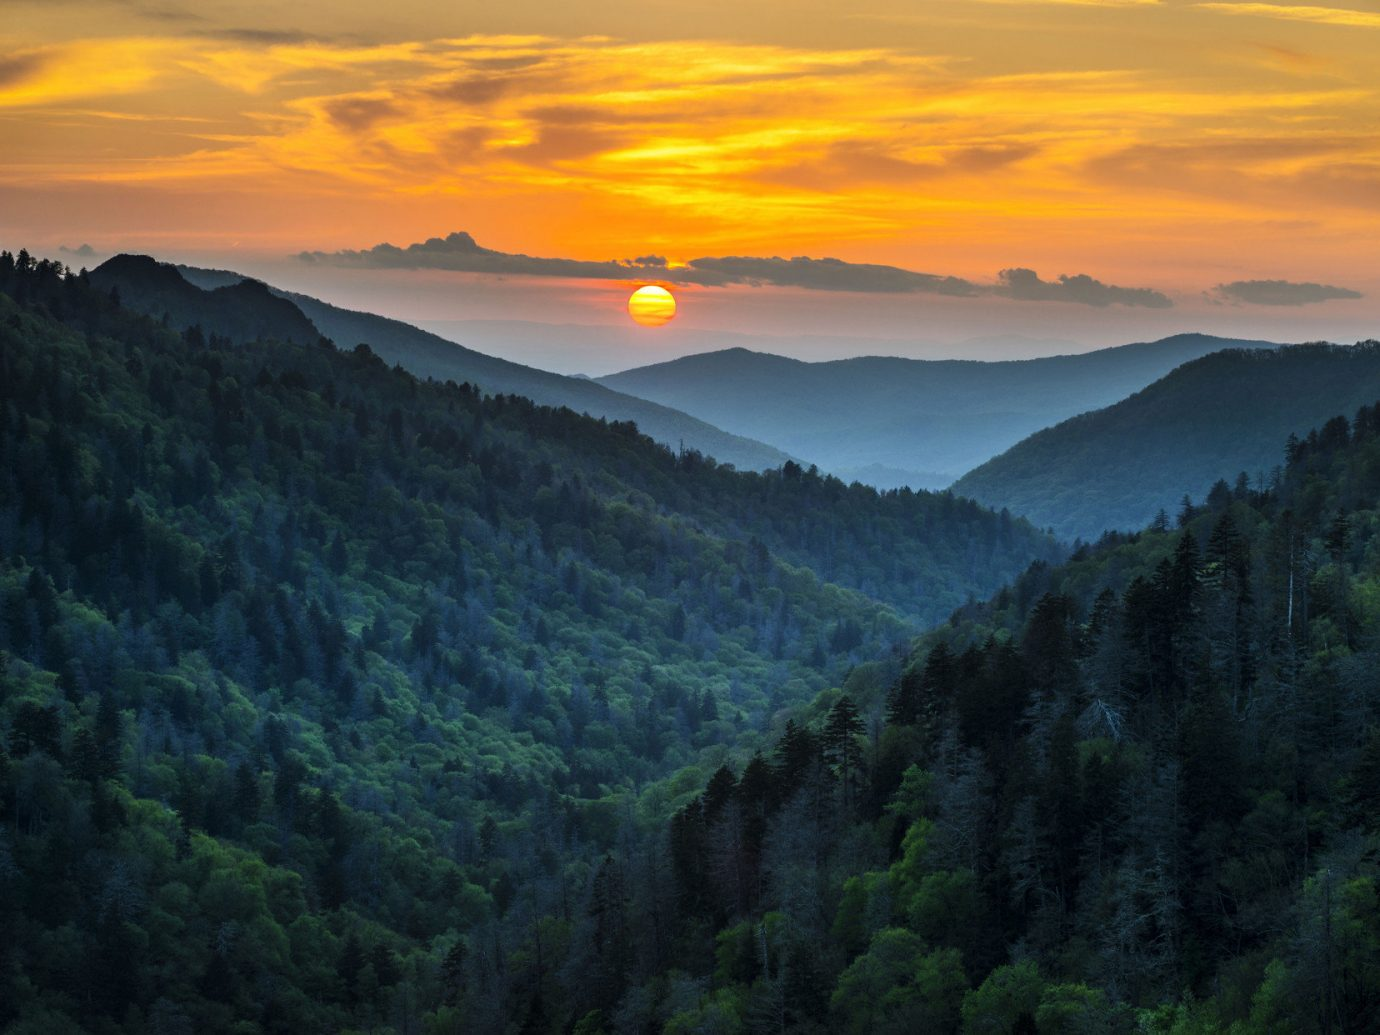 Family Travel National Parks Trip Ideas mountain outdoor sky mountainous landforms Nature wilderness geographical feature atmospheric phenomenon mountain range sunrise cloud Forest morning dawn hill landscape ridge Sunset canyon valley plateau hillside